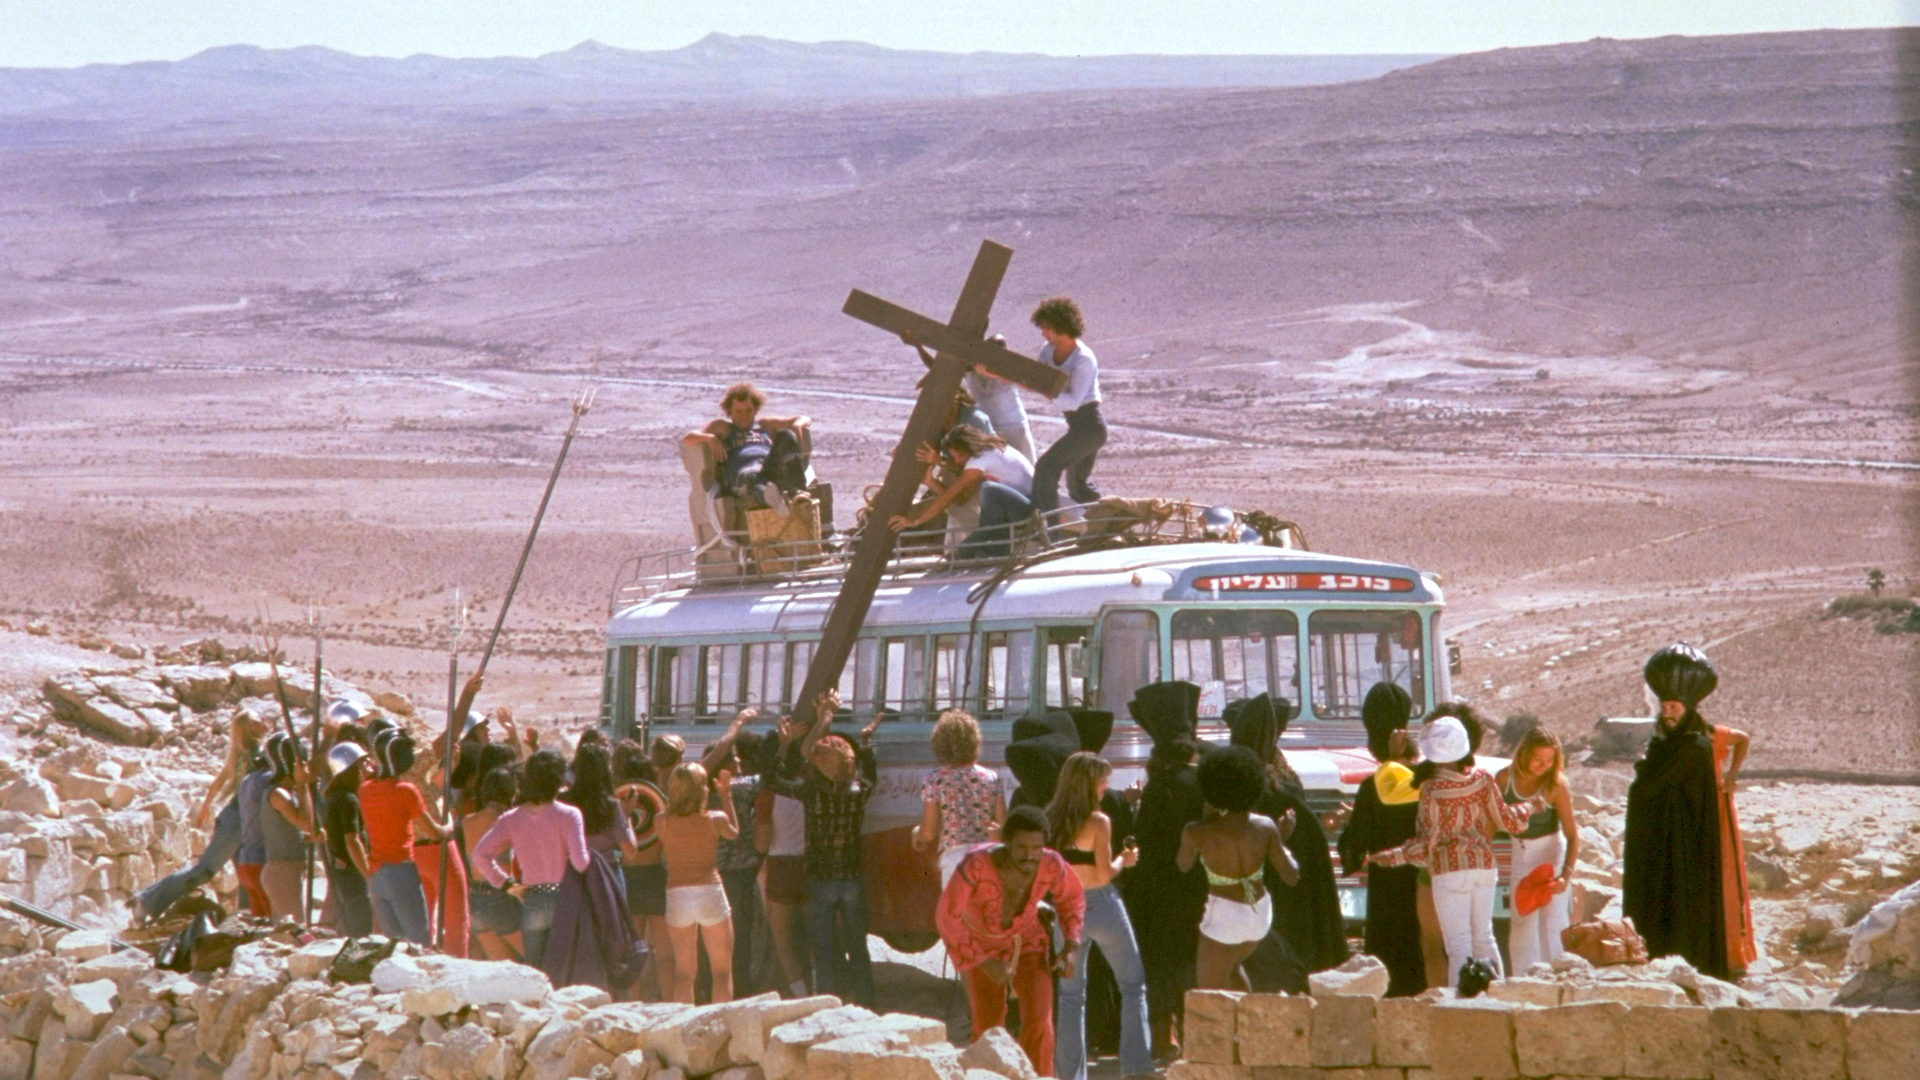 Desert scene from Jesus Christ Superstar. A large cross is loaded onto the roof of a bus while a crowd gathers around.